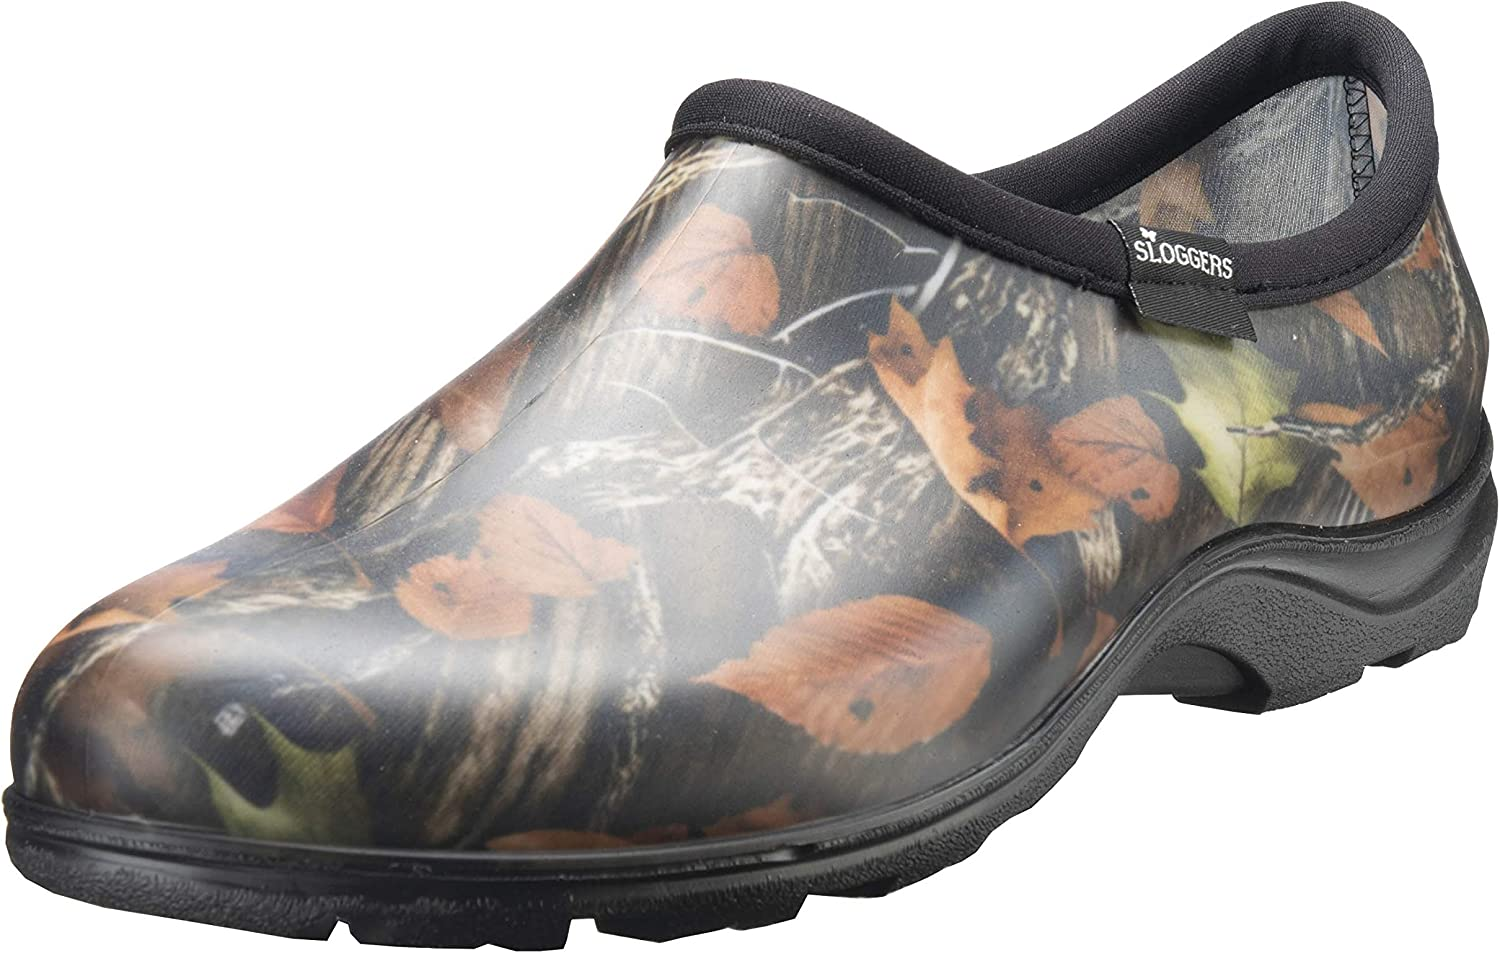 Sloggers Shoe's Men's Waterproof Comfort Garden